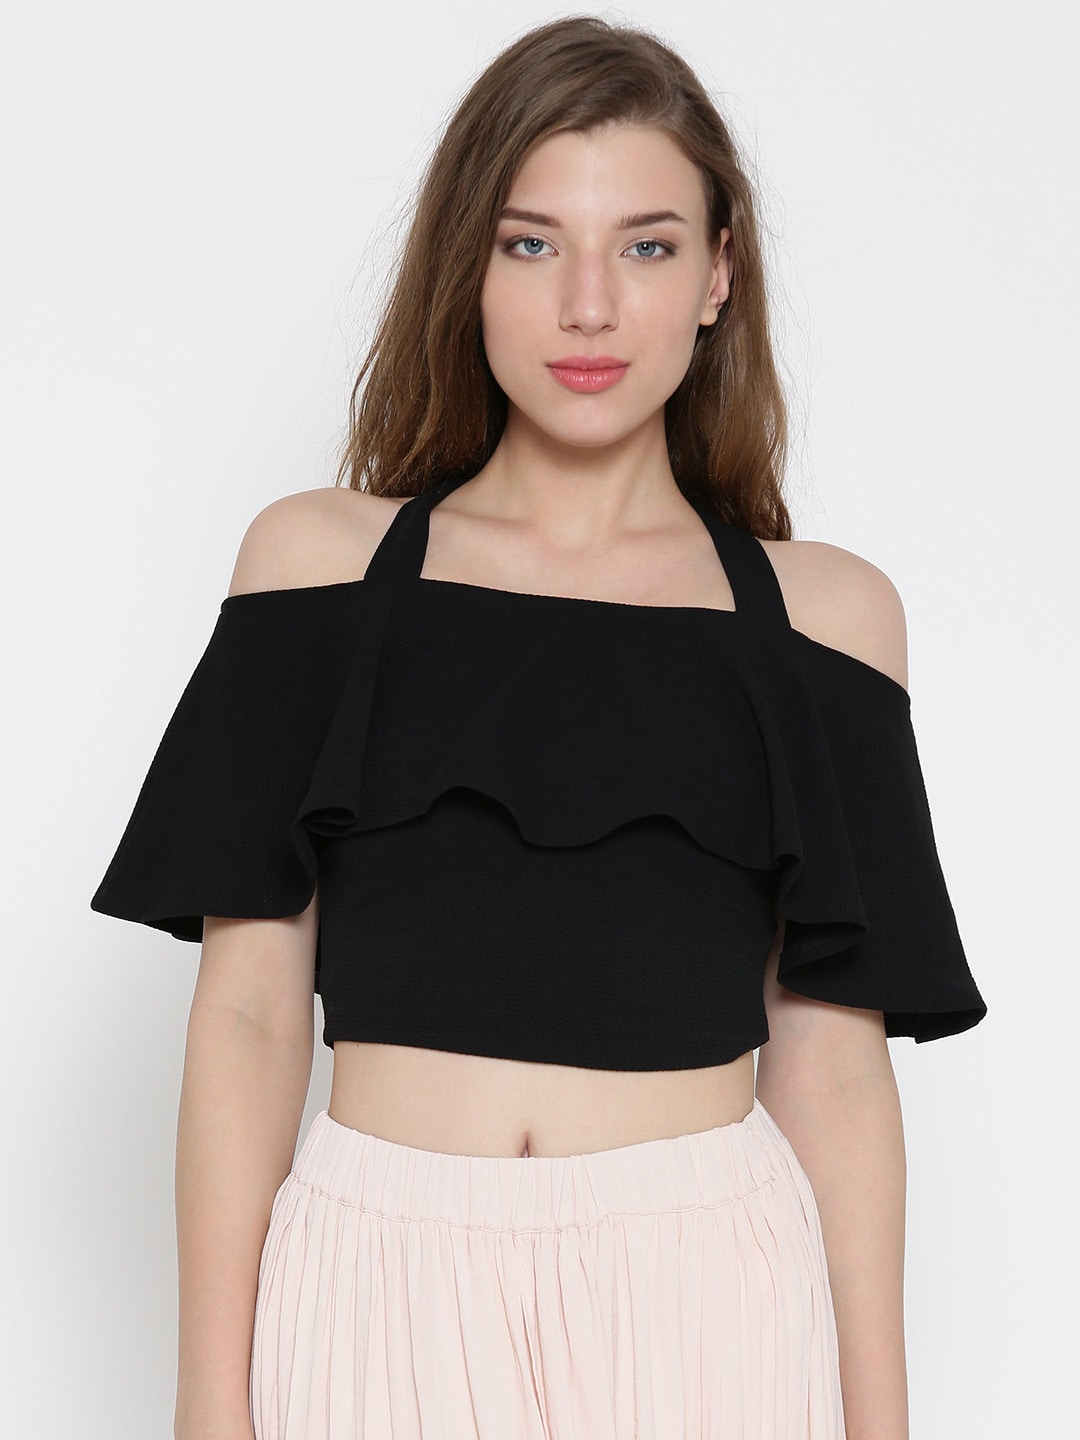 e37be235749e5 Crop Tops - Buy Midriff Crop Tops Online for Women in India